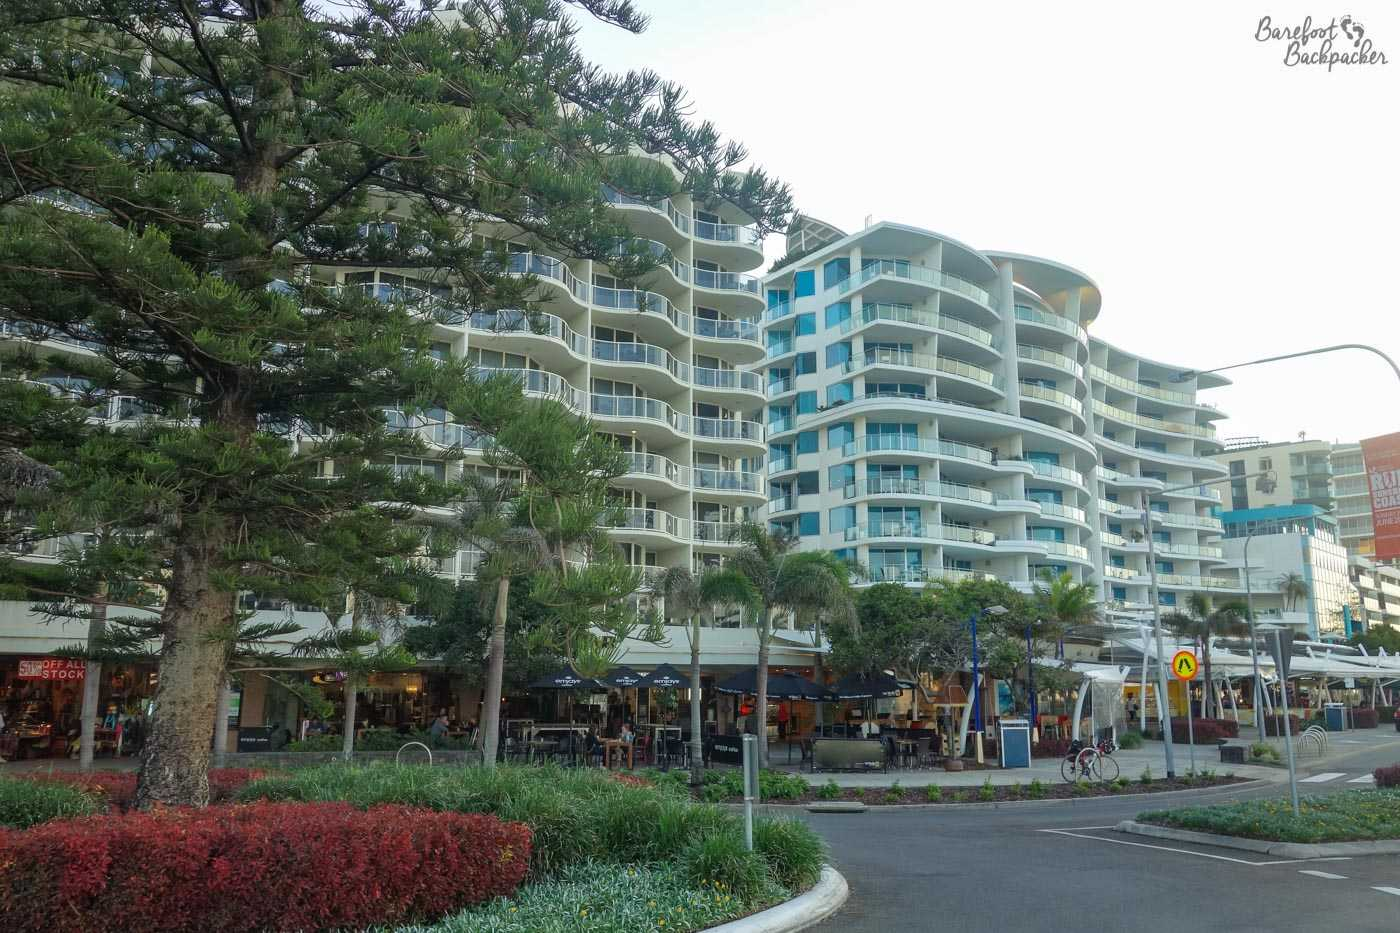 Mooloolaba promenade, complete with large condos on the left, and palm-like trees on the right.